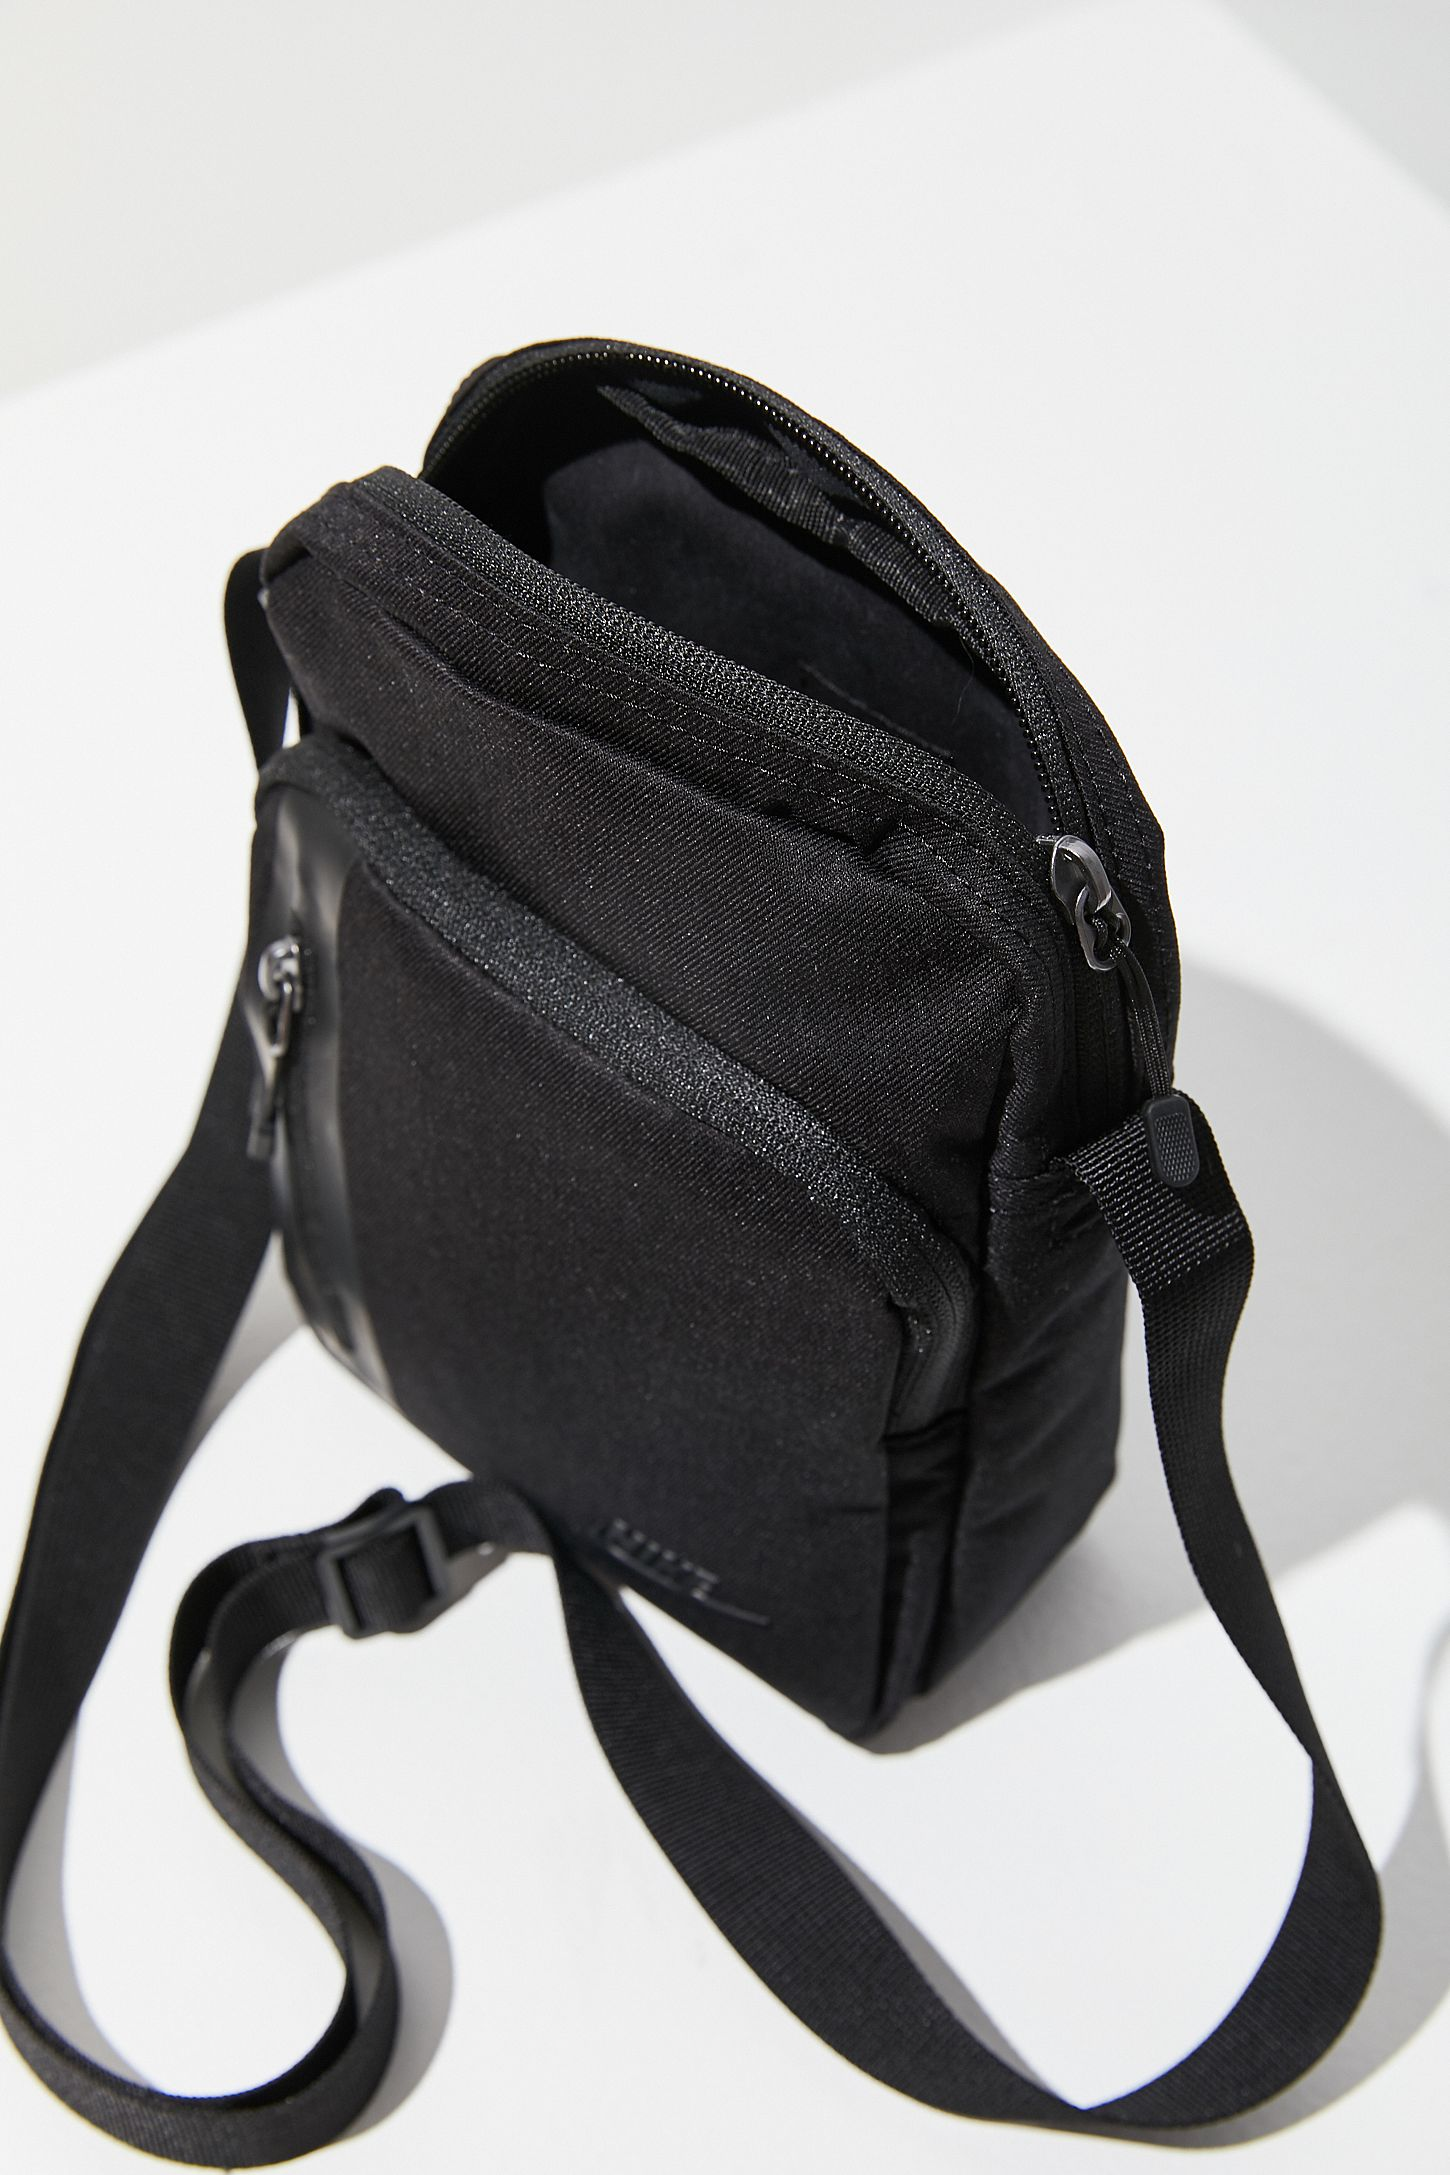 Slide View 5 Nike Small Tech Crossbody Bag